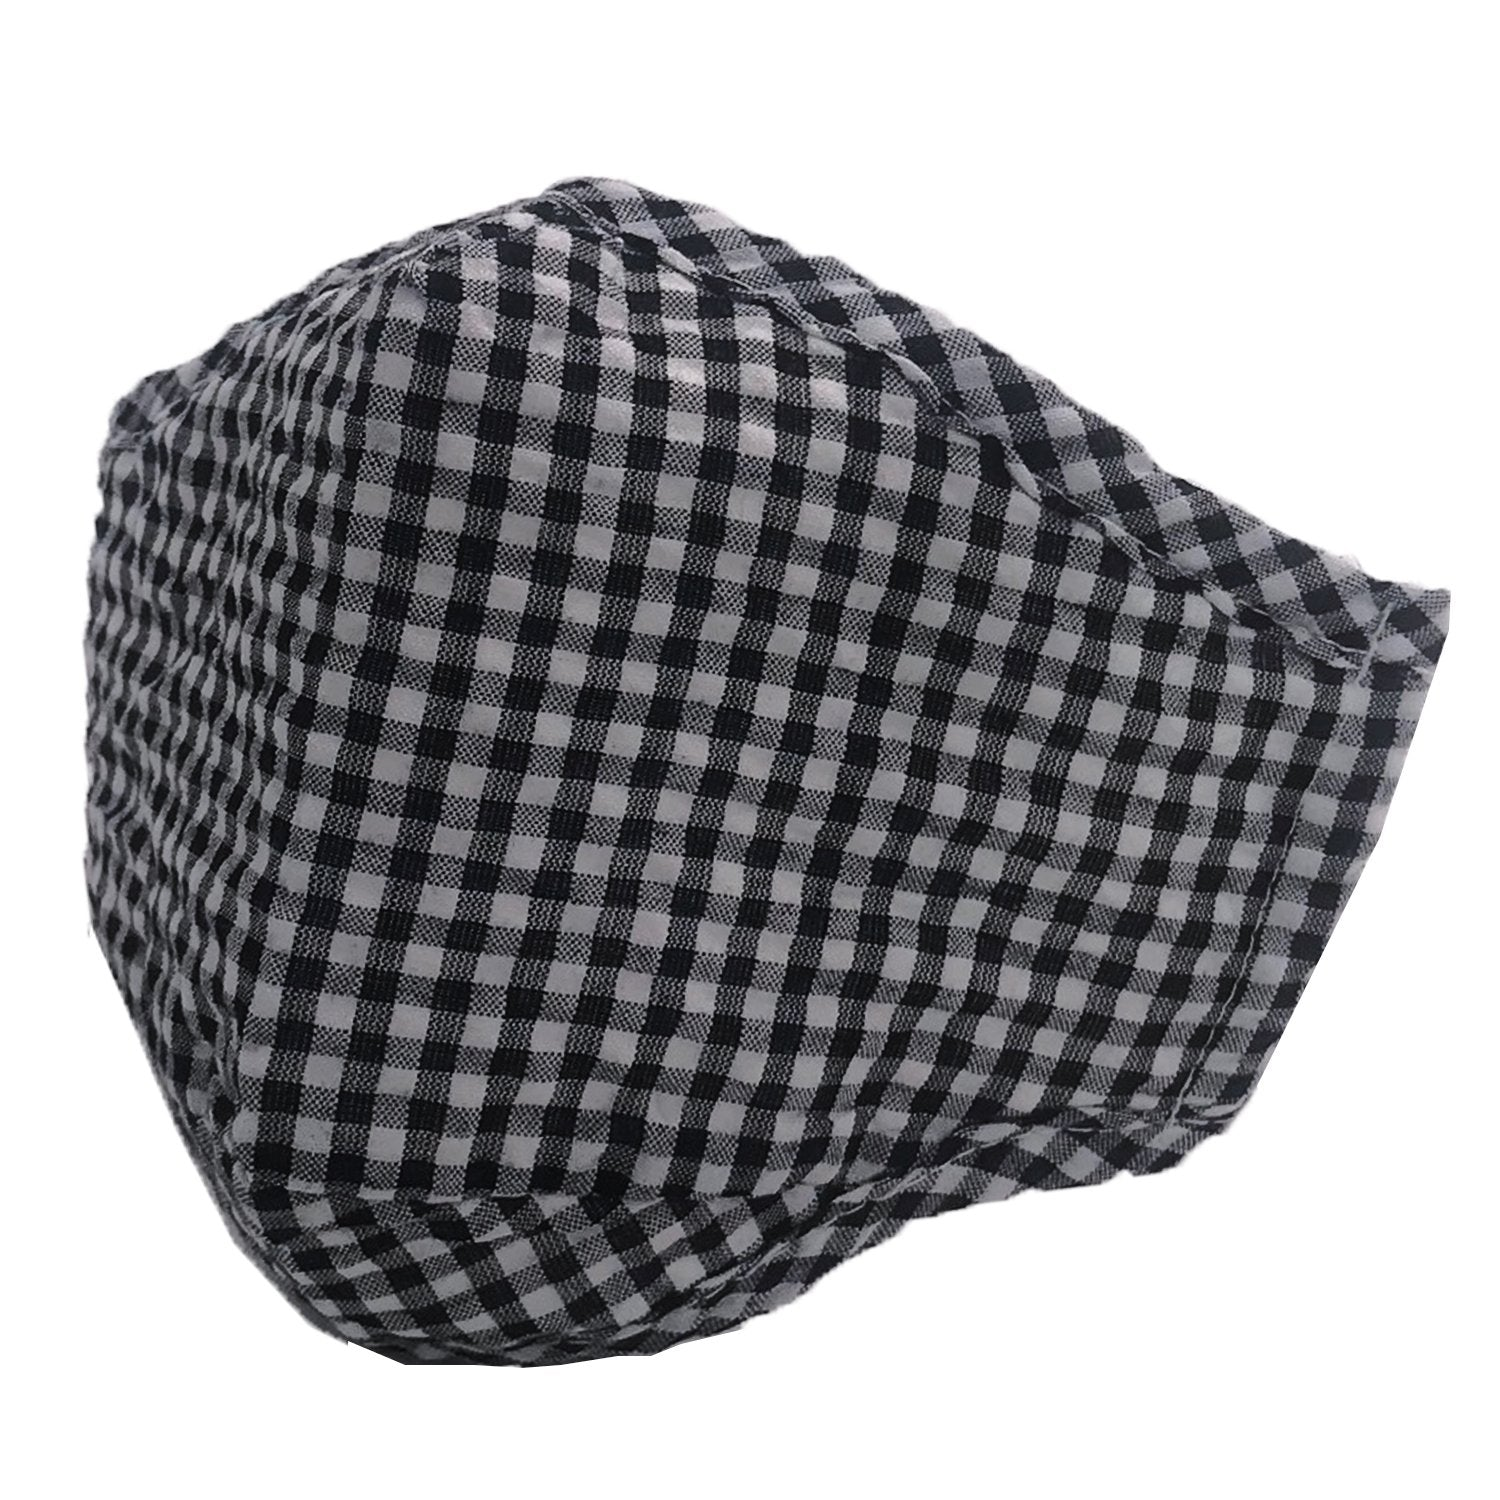 ADULT MASK GINGHAM BLACK